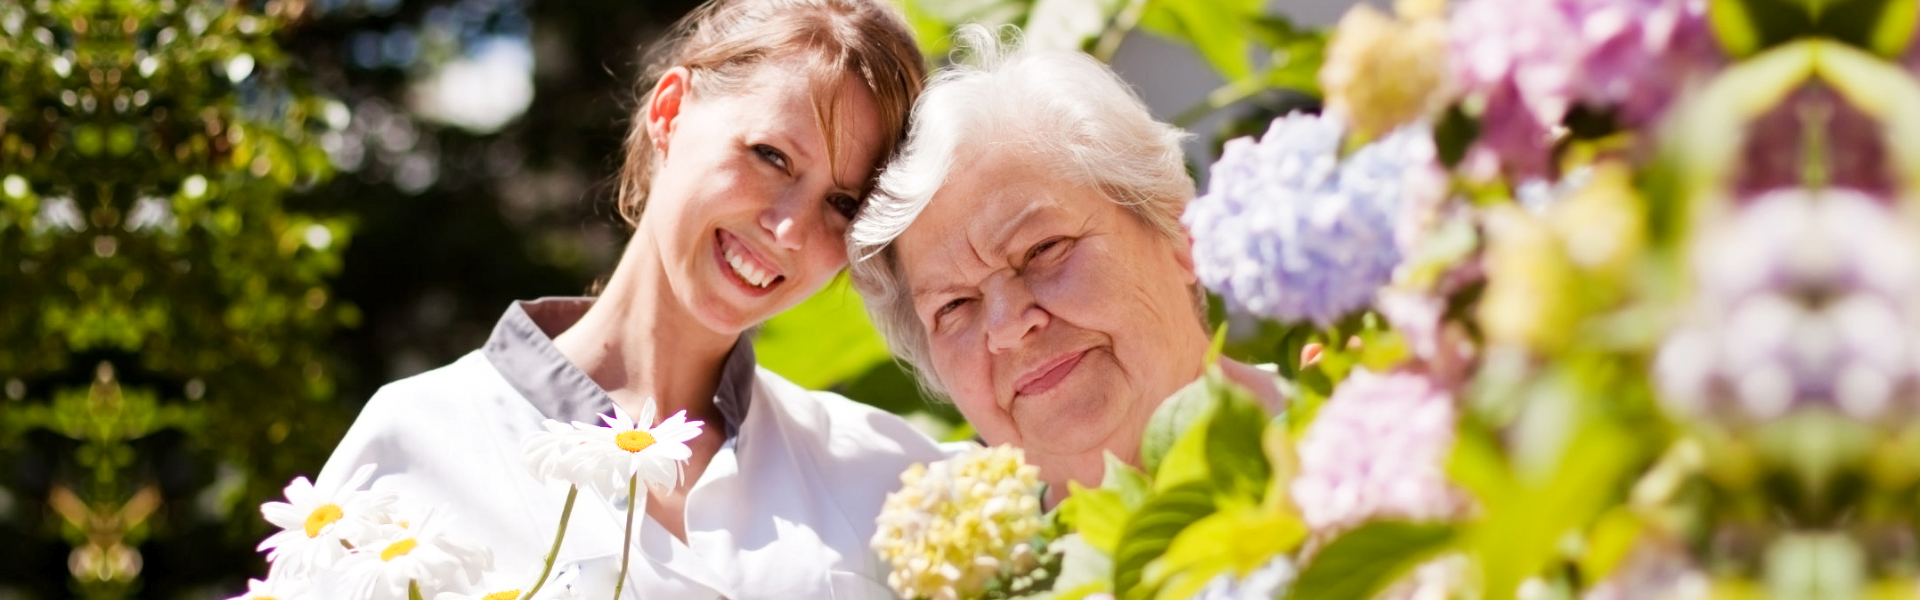 Caregiver and elder in the garden